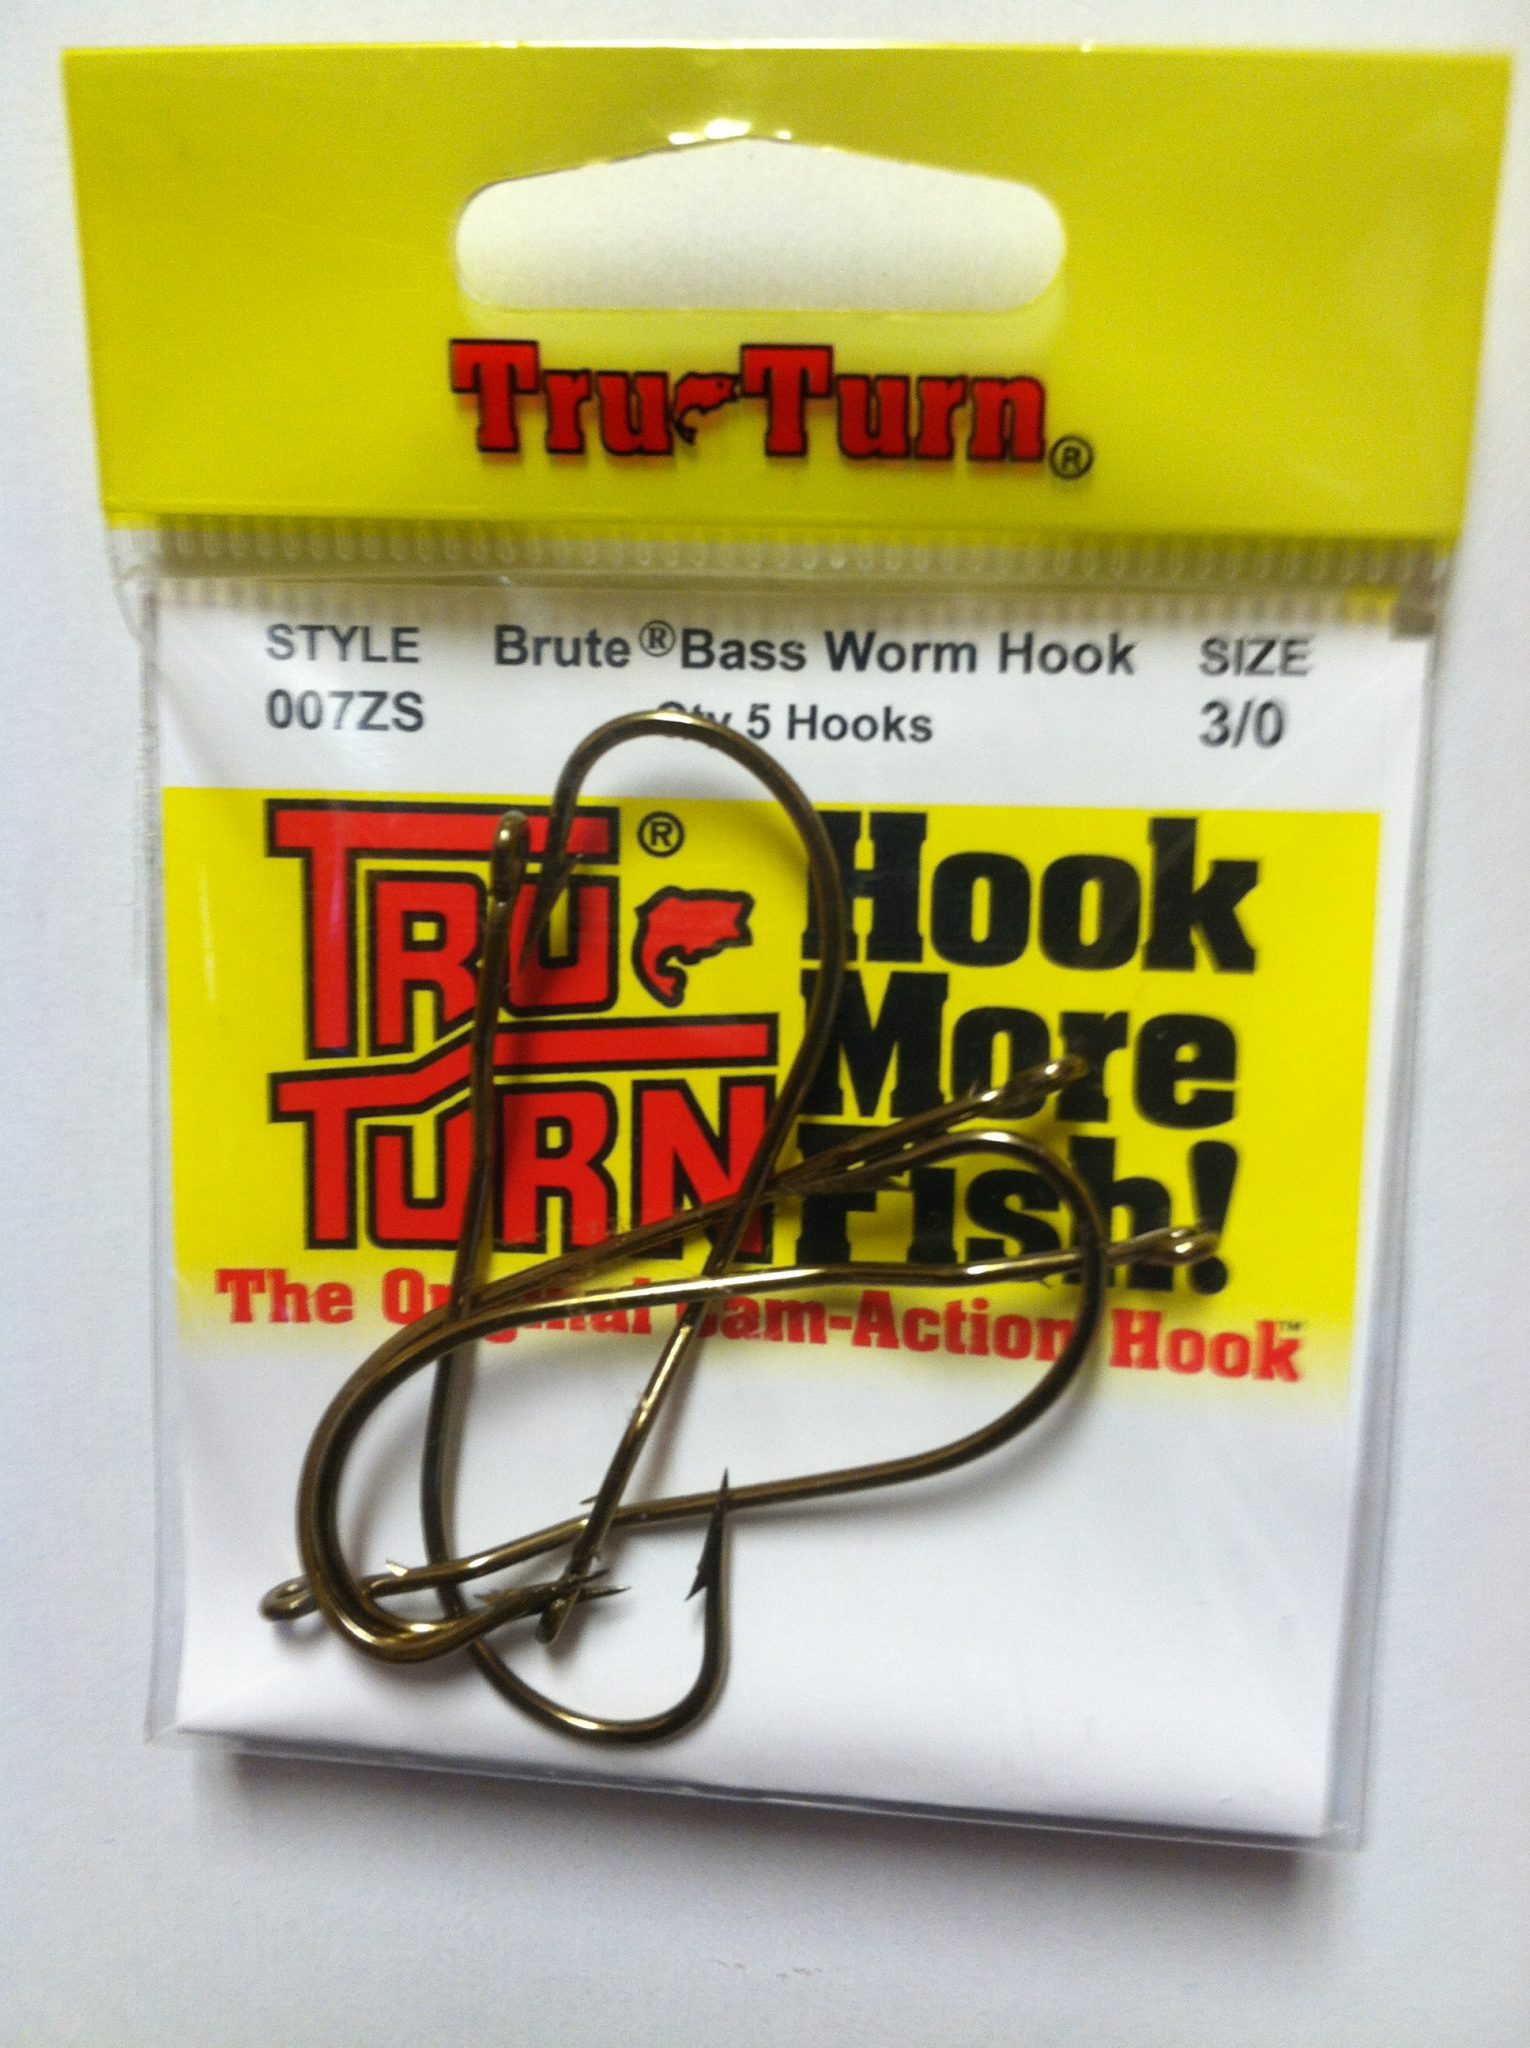 tru turn brute bass worm hook 5 pk.